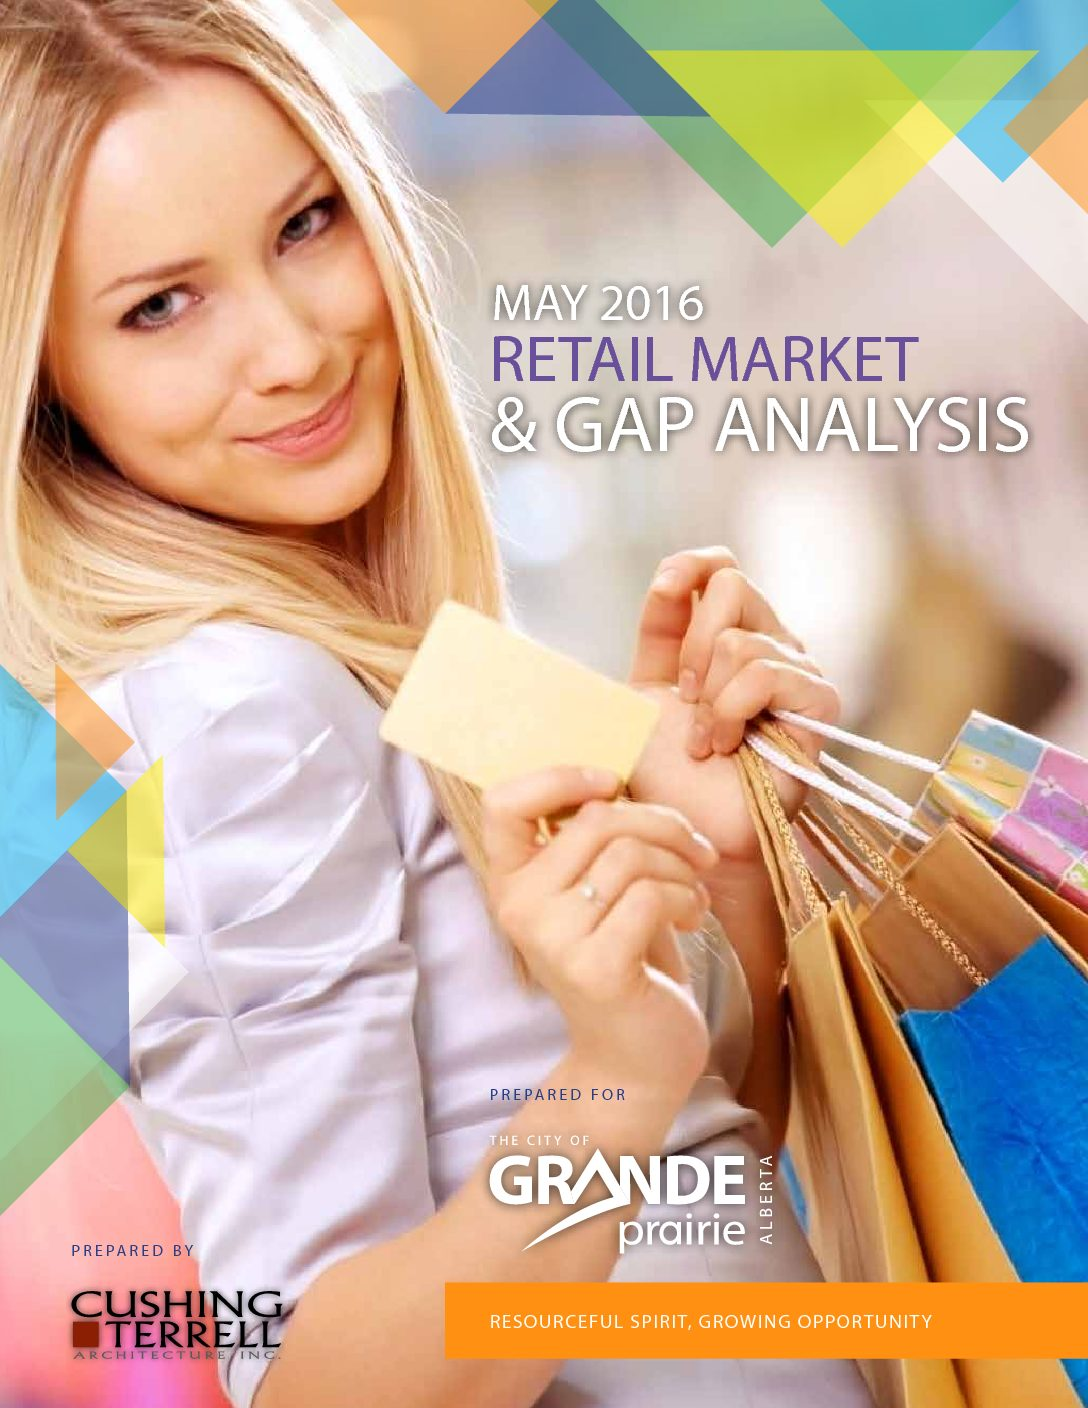 Grande Prairie – Retail Market & Gap Analysis 2016